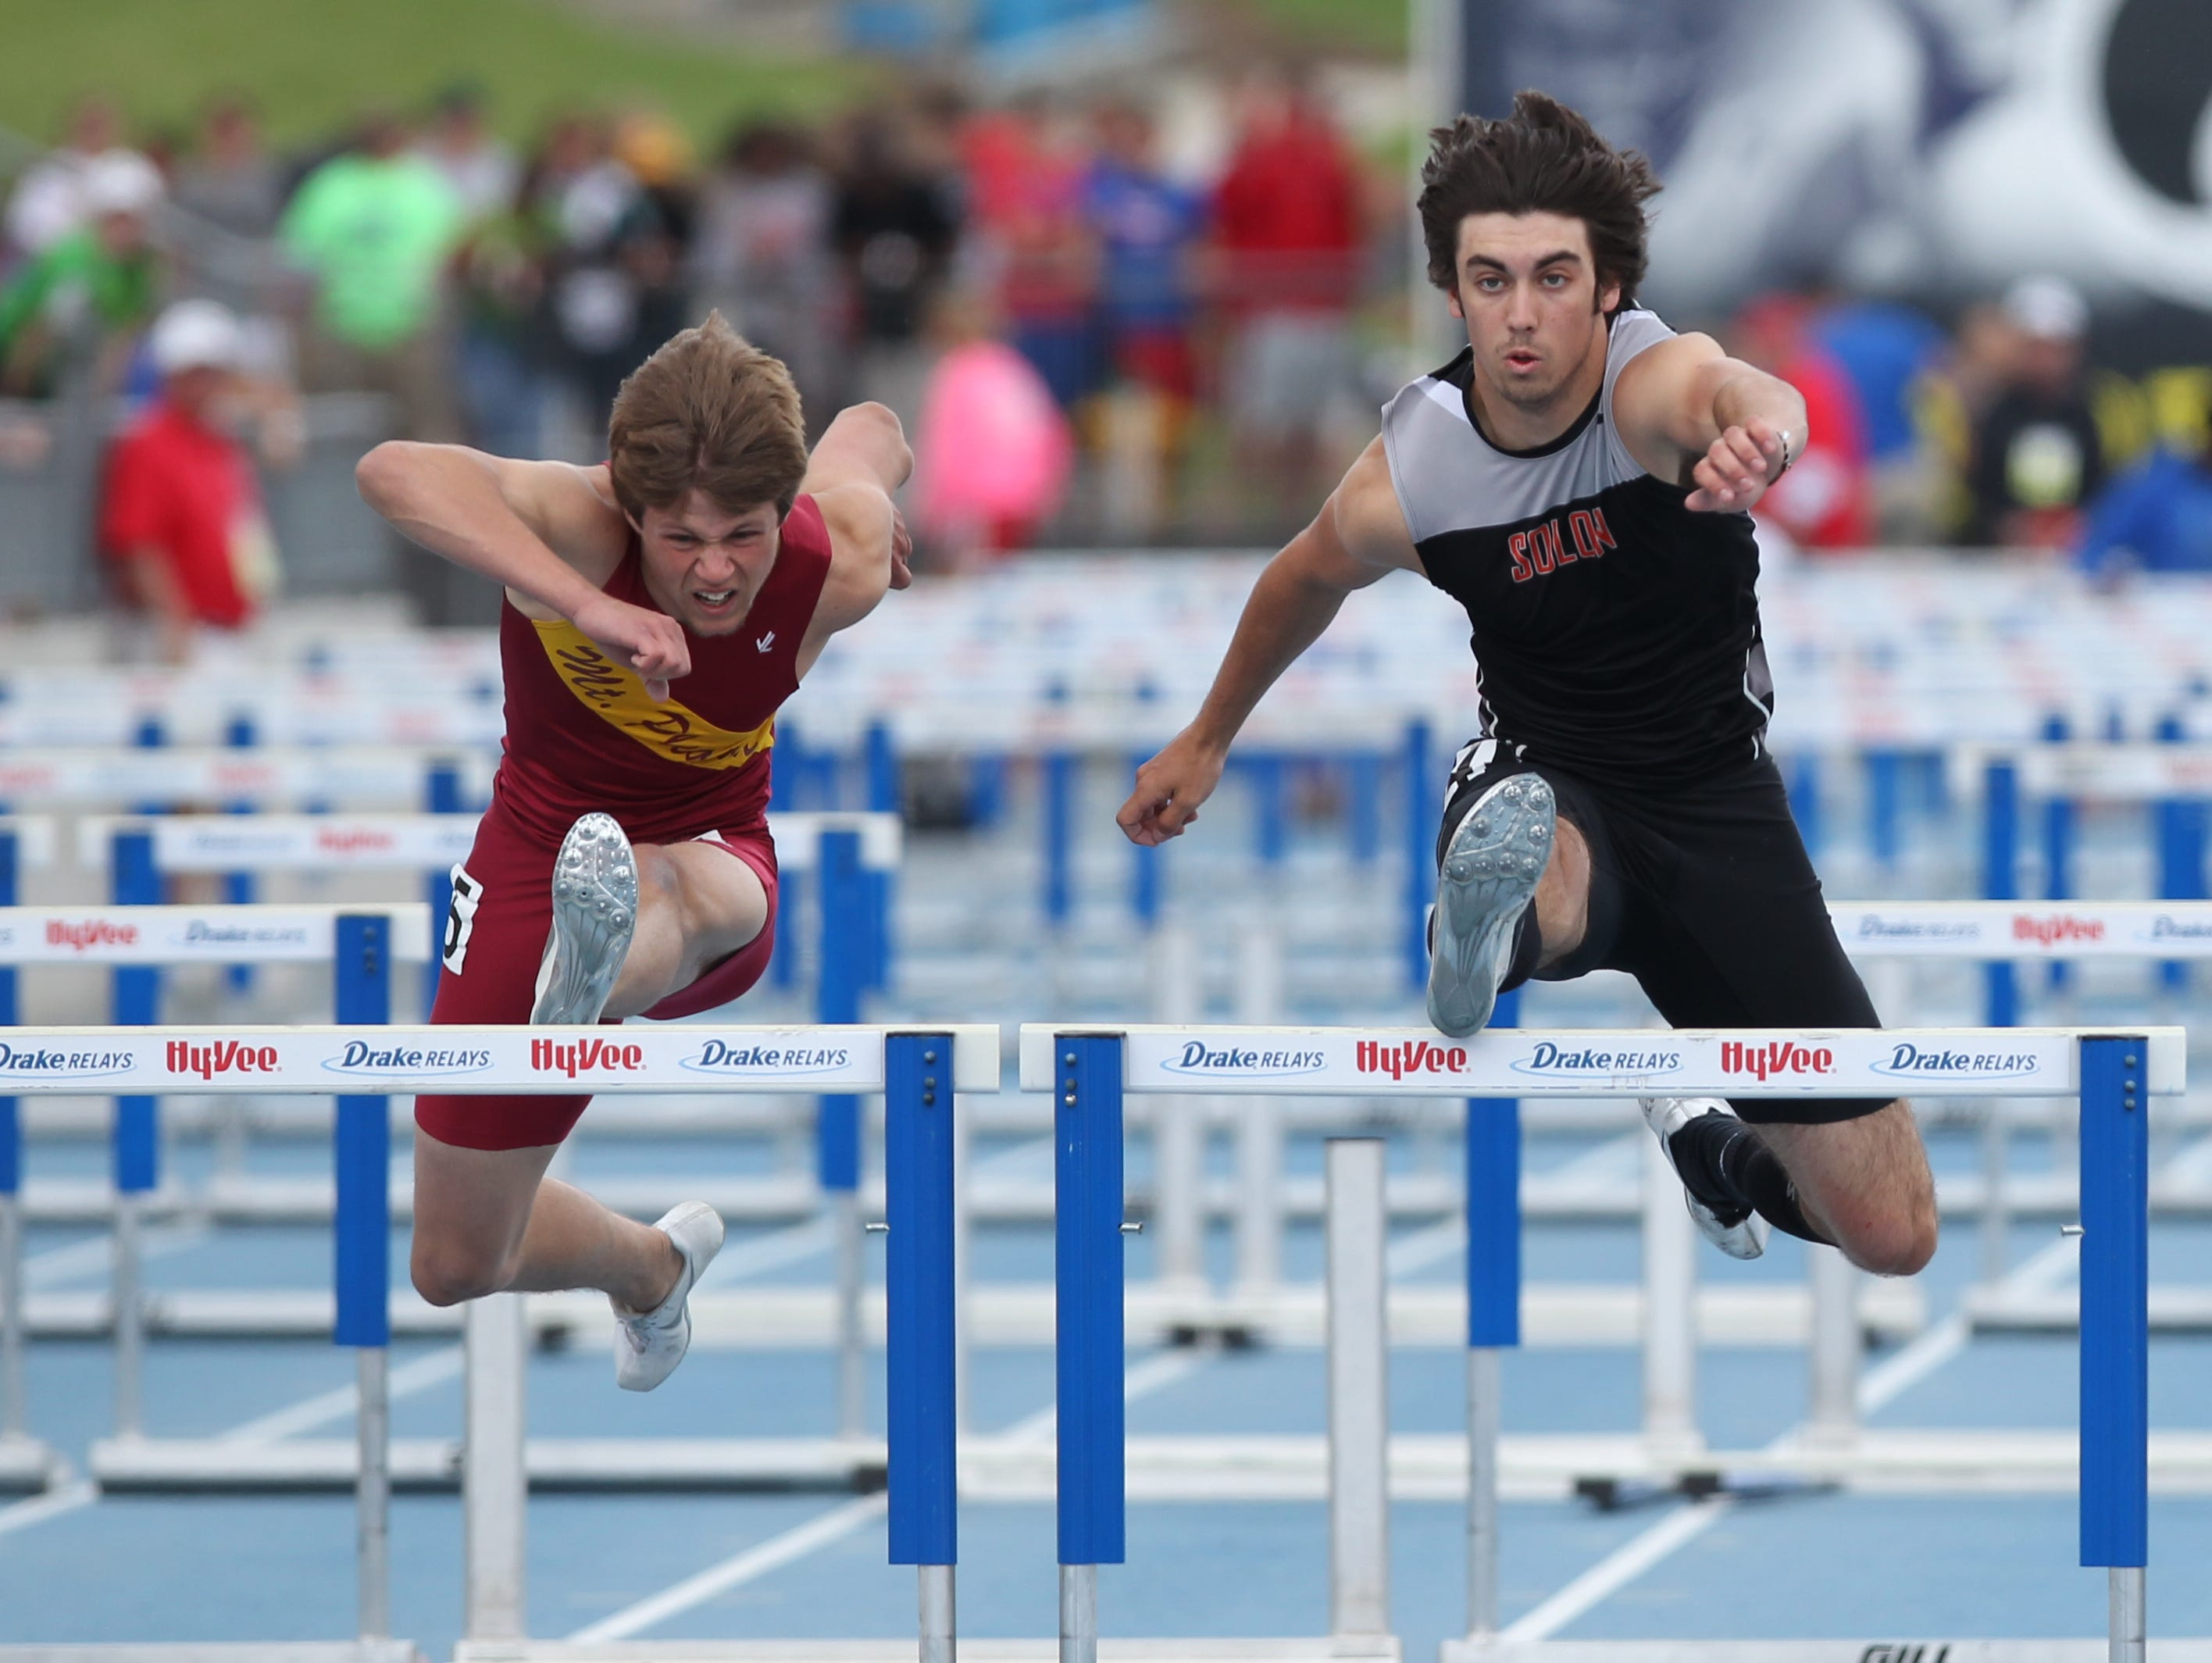 Connor Ham of Solon edges out Cole Phillips of Mt. Pleasant to win the 3A Boys 110 Meter Hurdles at the Iowa High School State Track Championships at Drake Stadium.